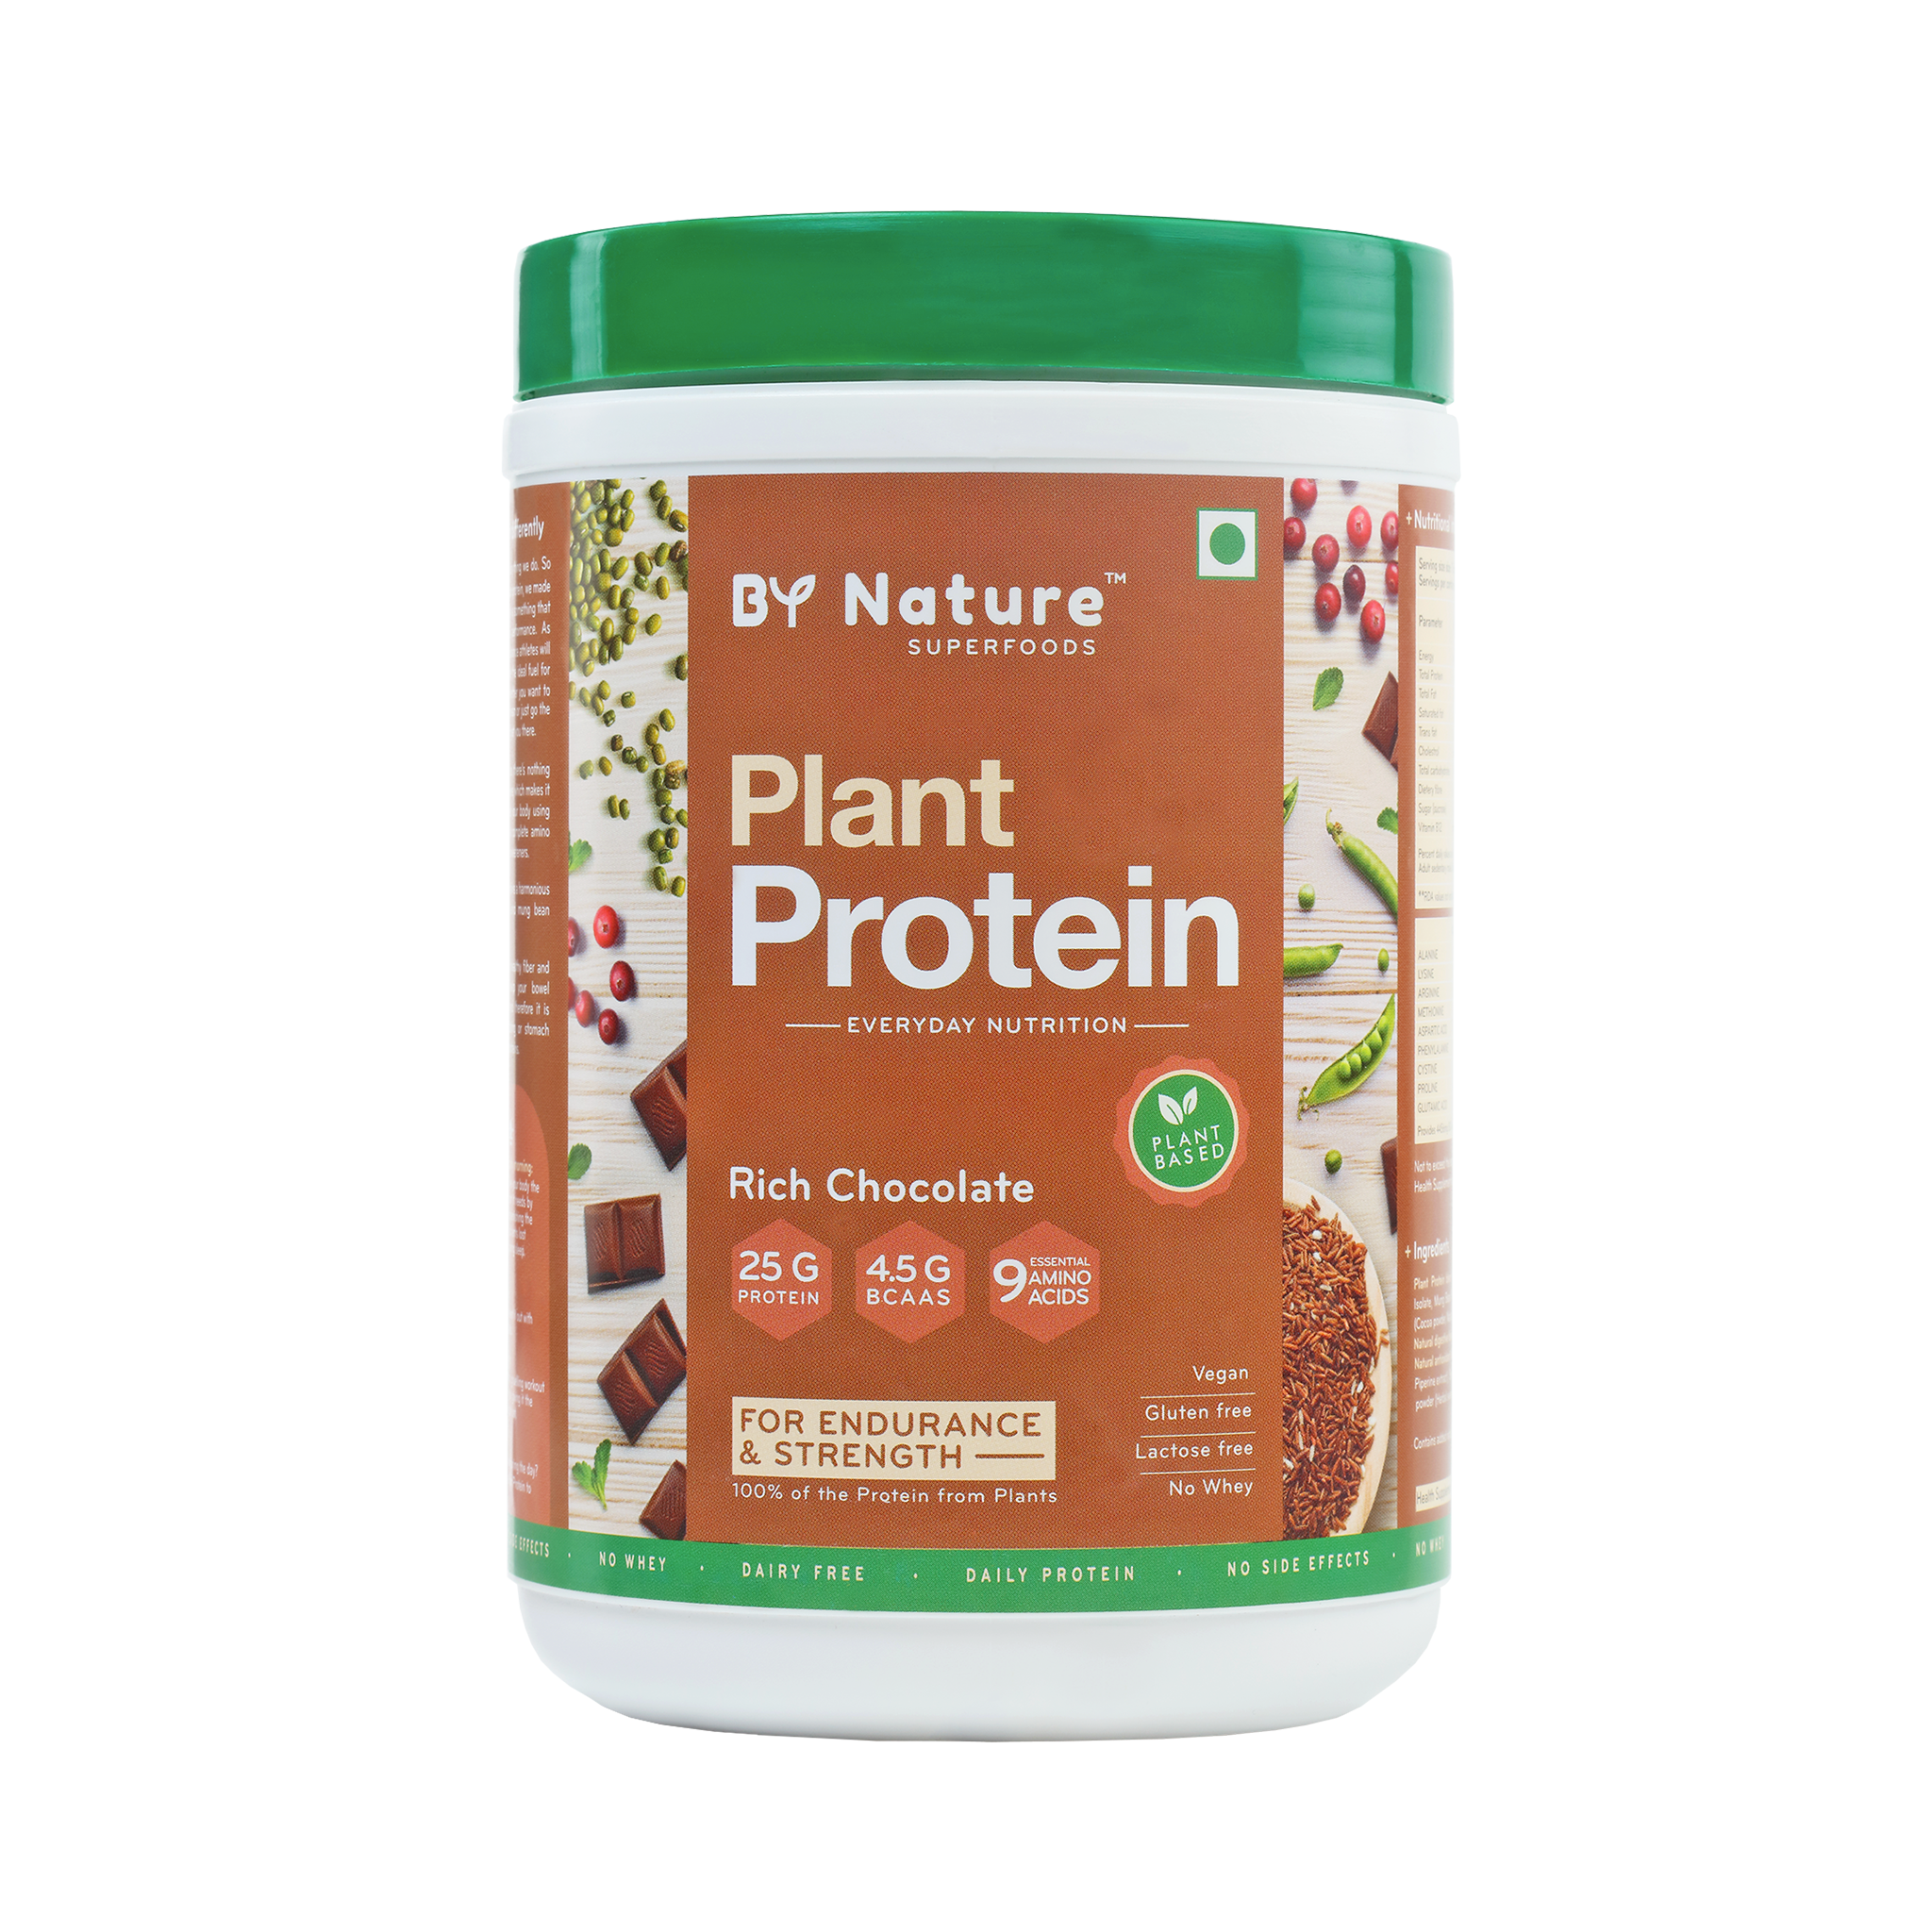 By Nature Plant Protein (Rich Chocolate), Vegan, All Natural, No Added Sugar 500g